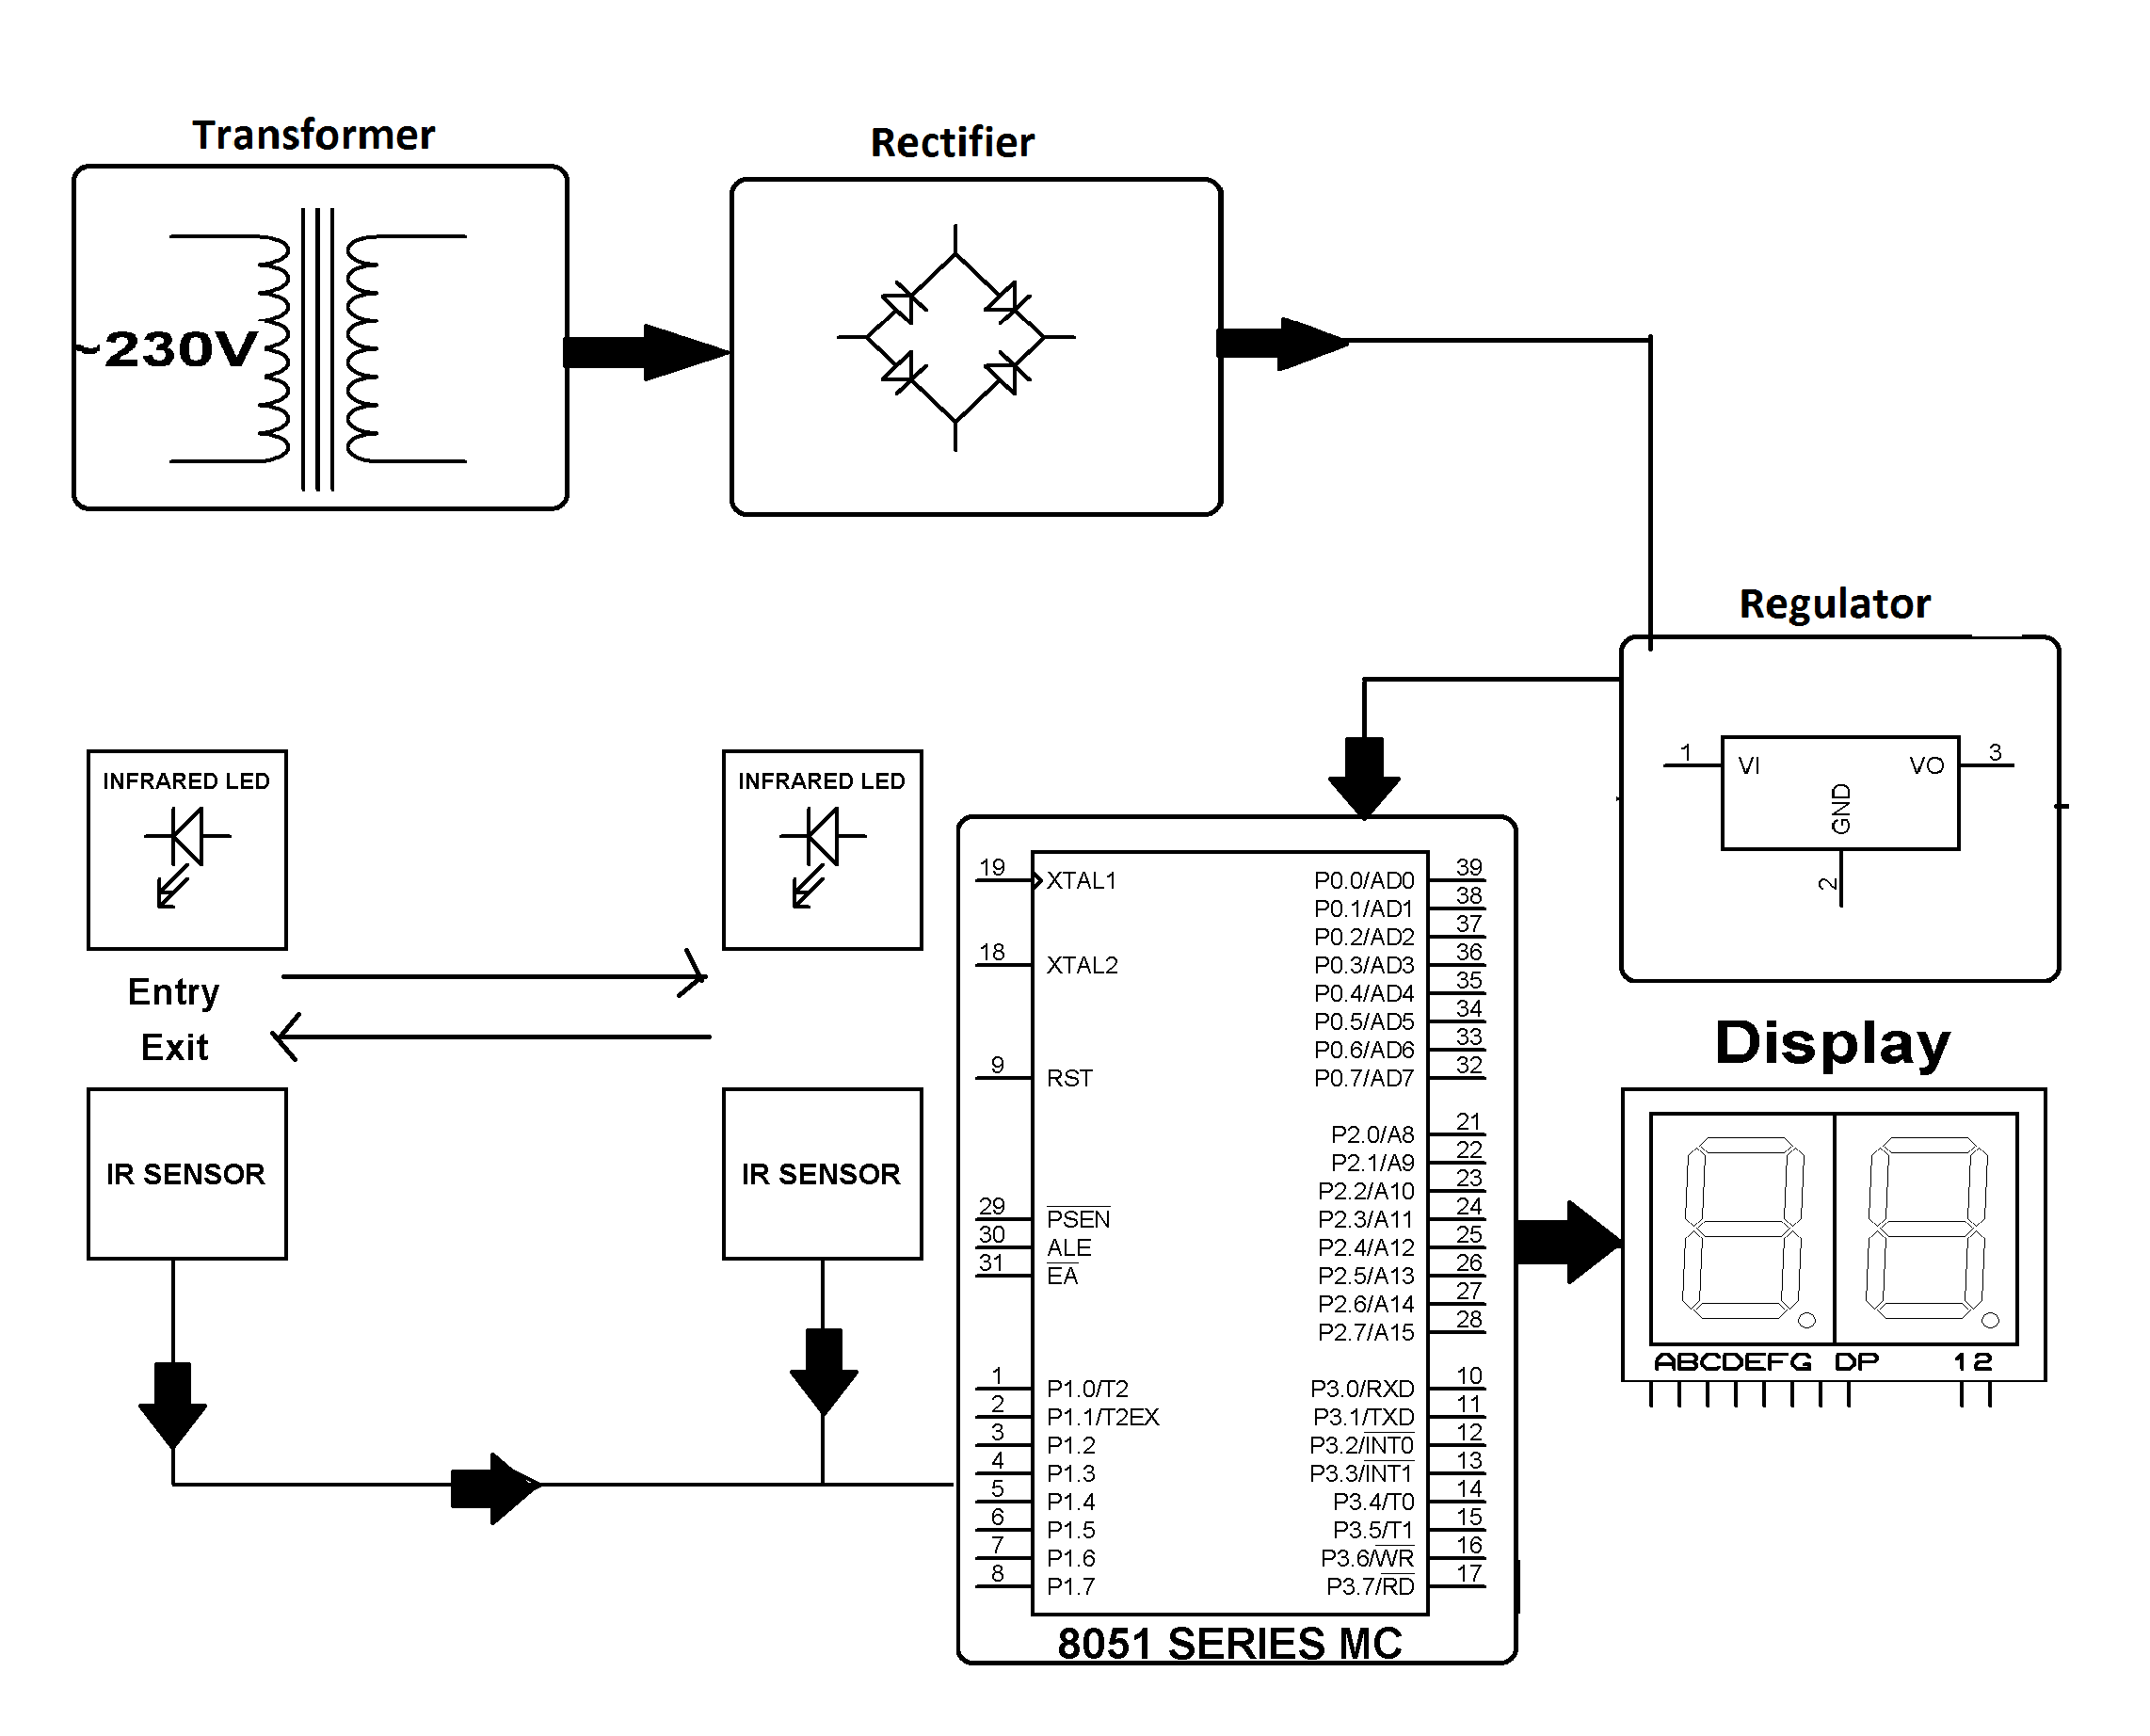 7 Segment Display Block Diagram